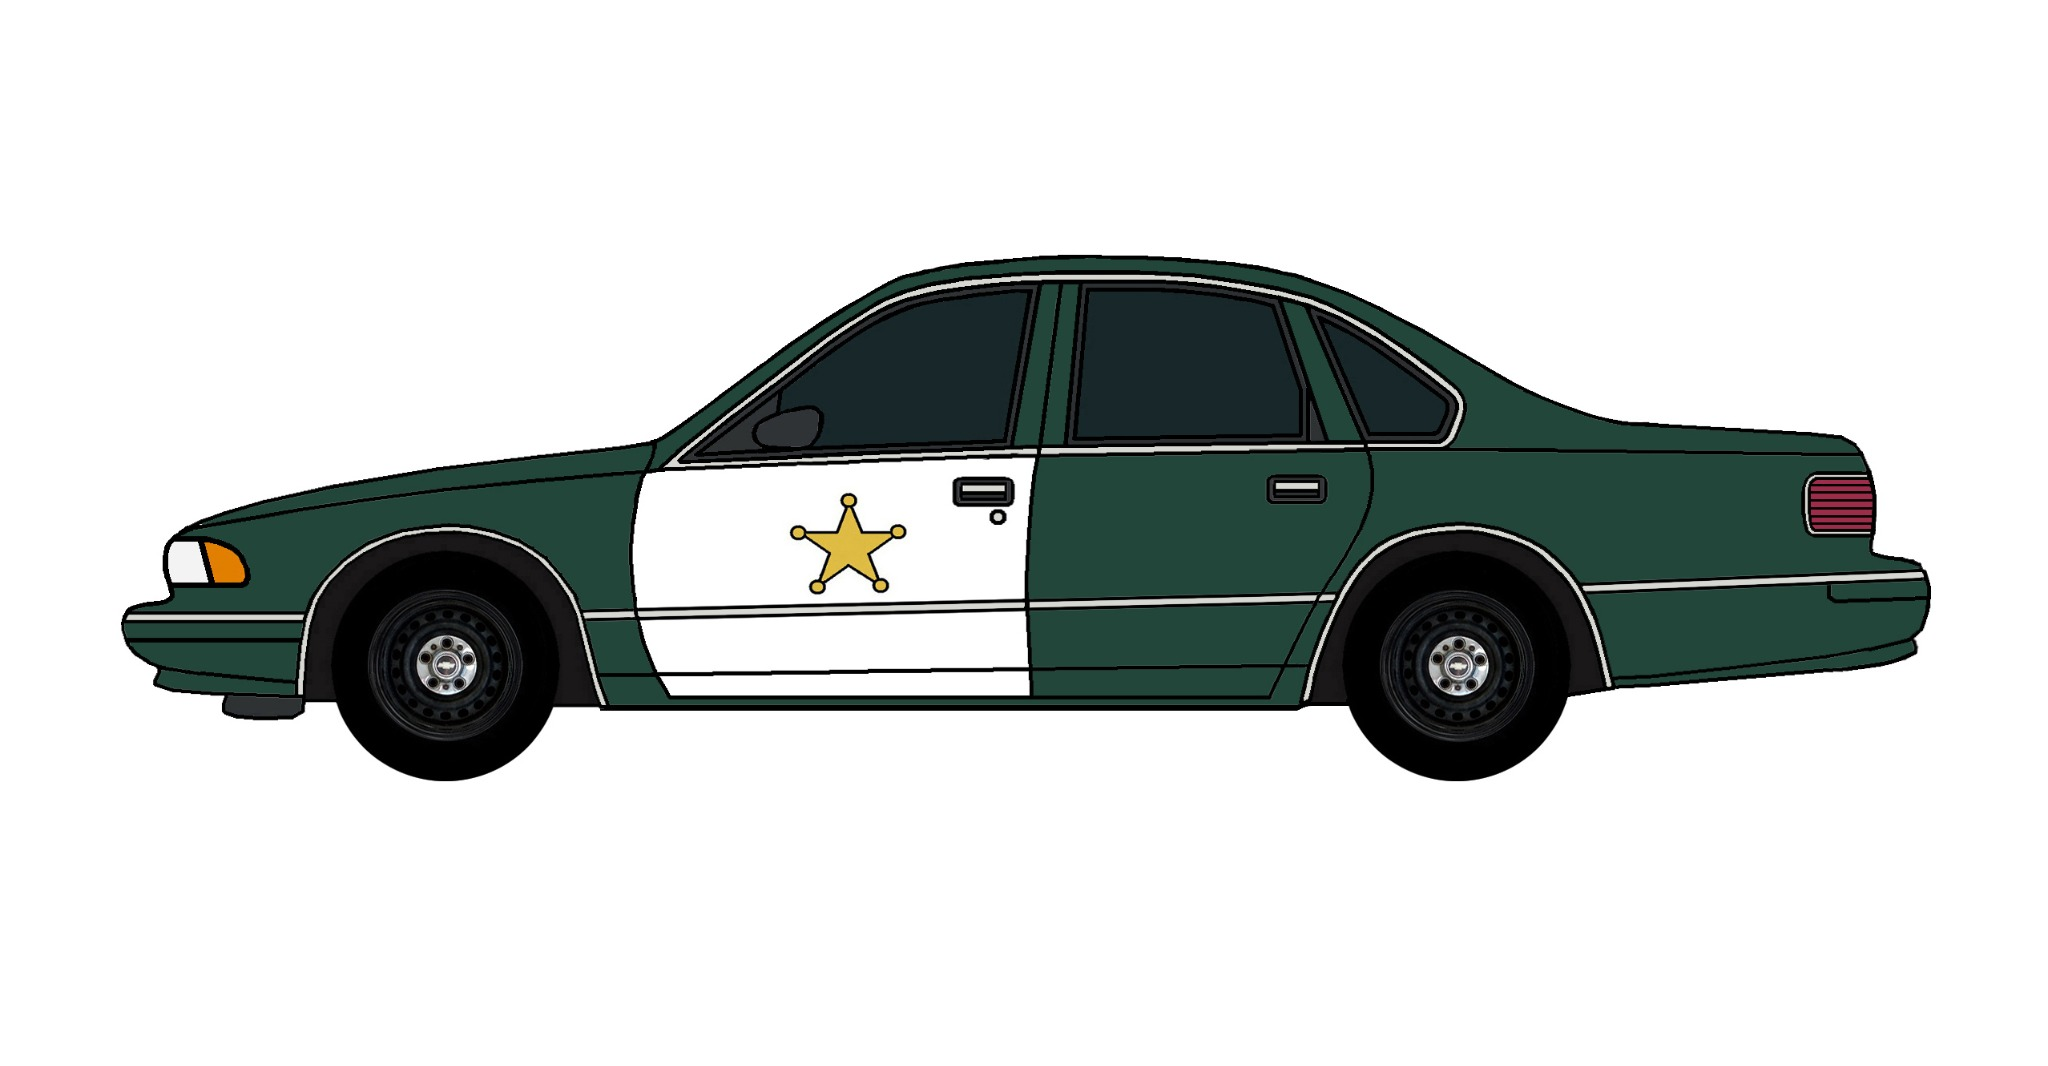 1995 Chevy Caprice Police Car HUNTER GREEN